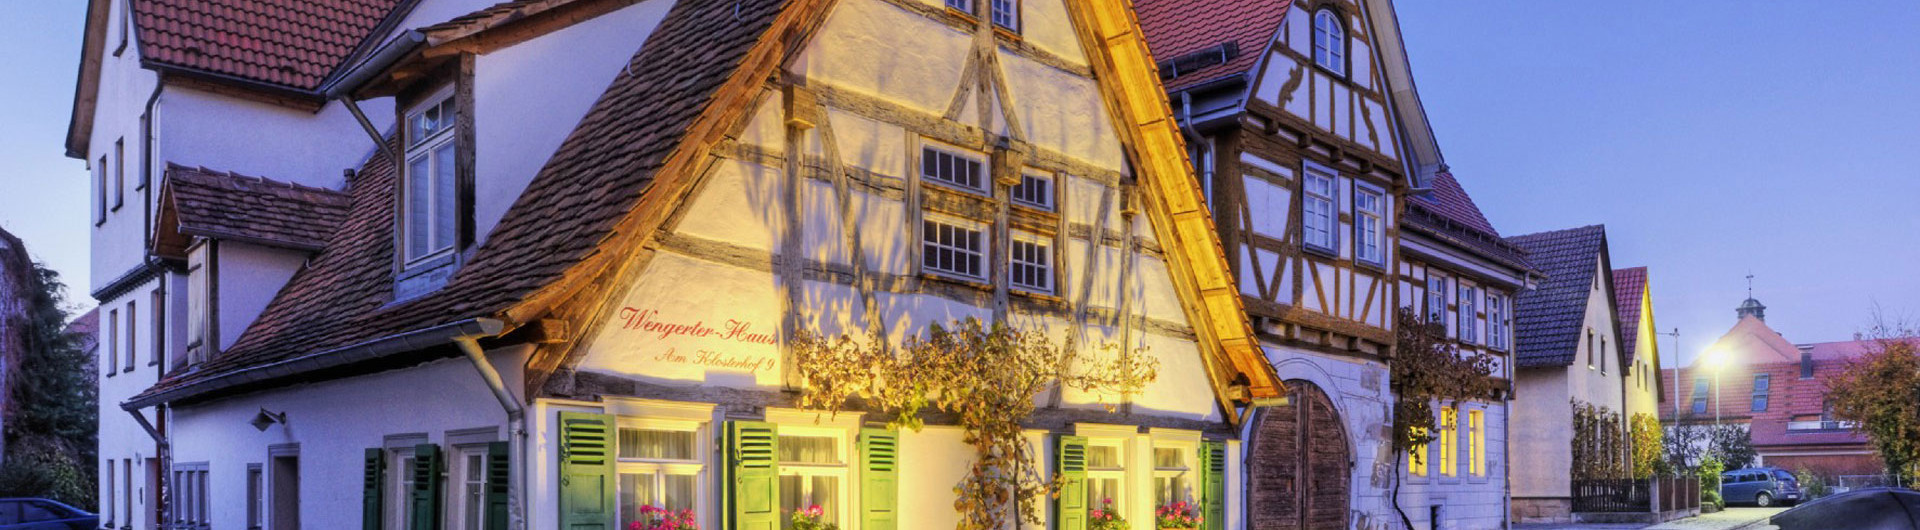 Small half-timbered house with facade lighting